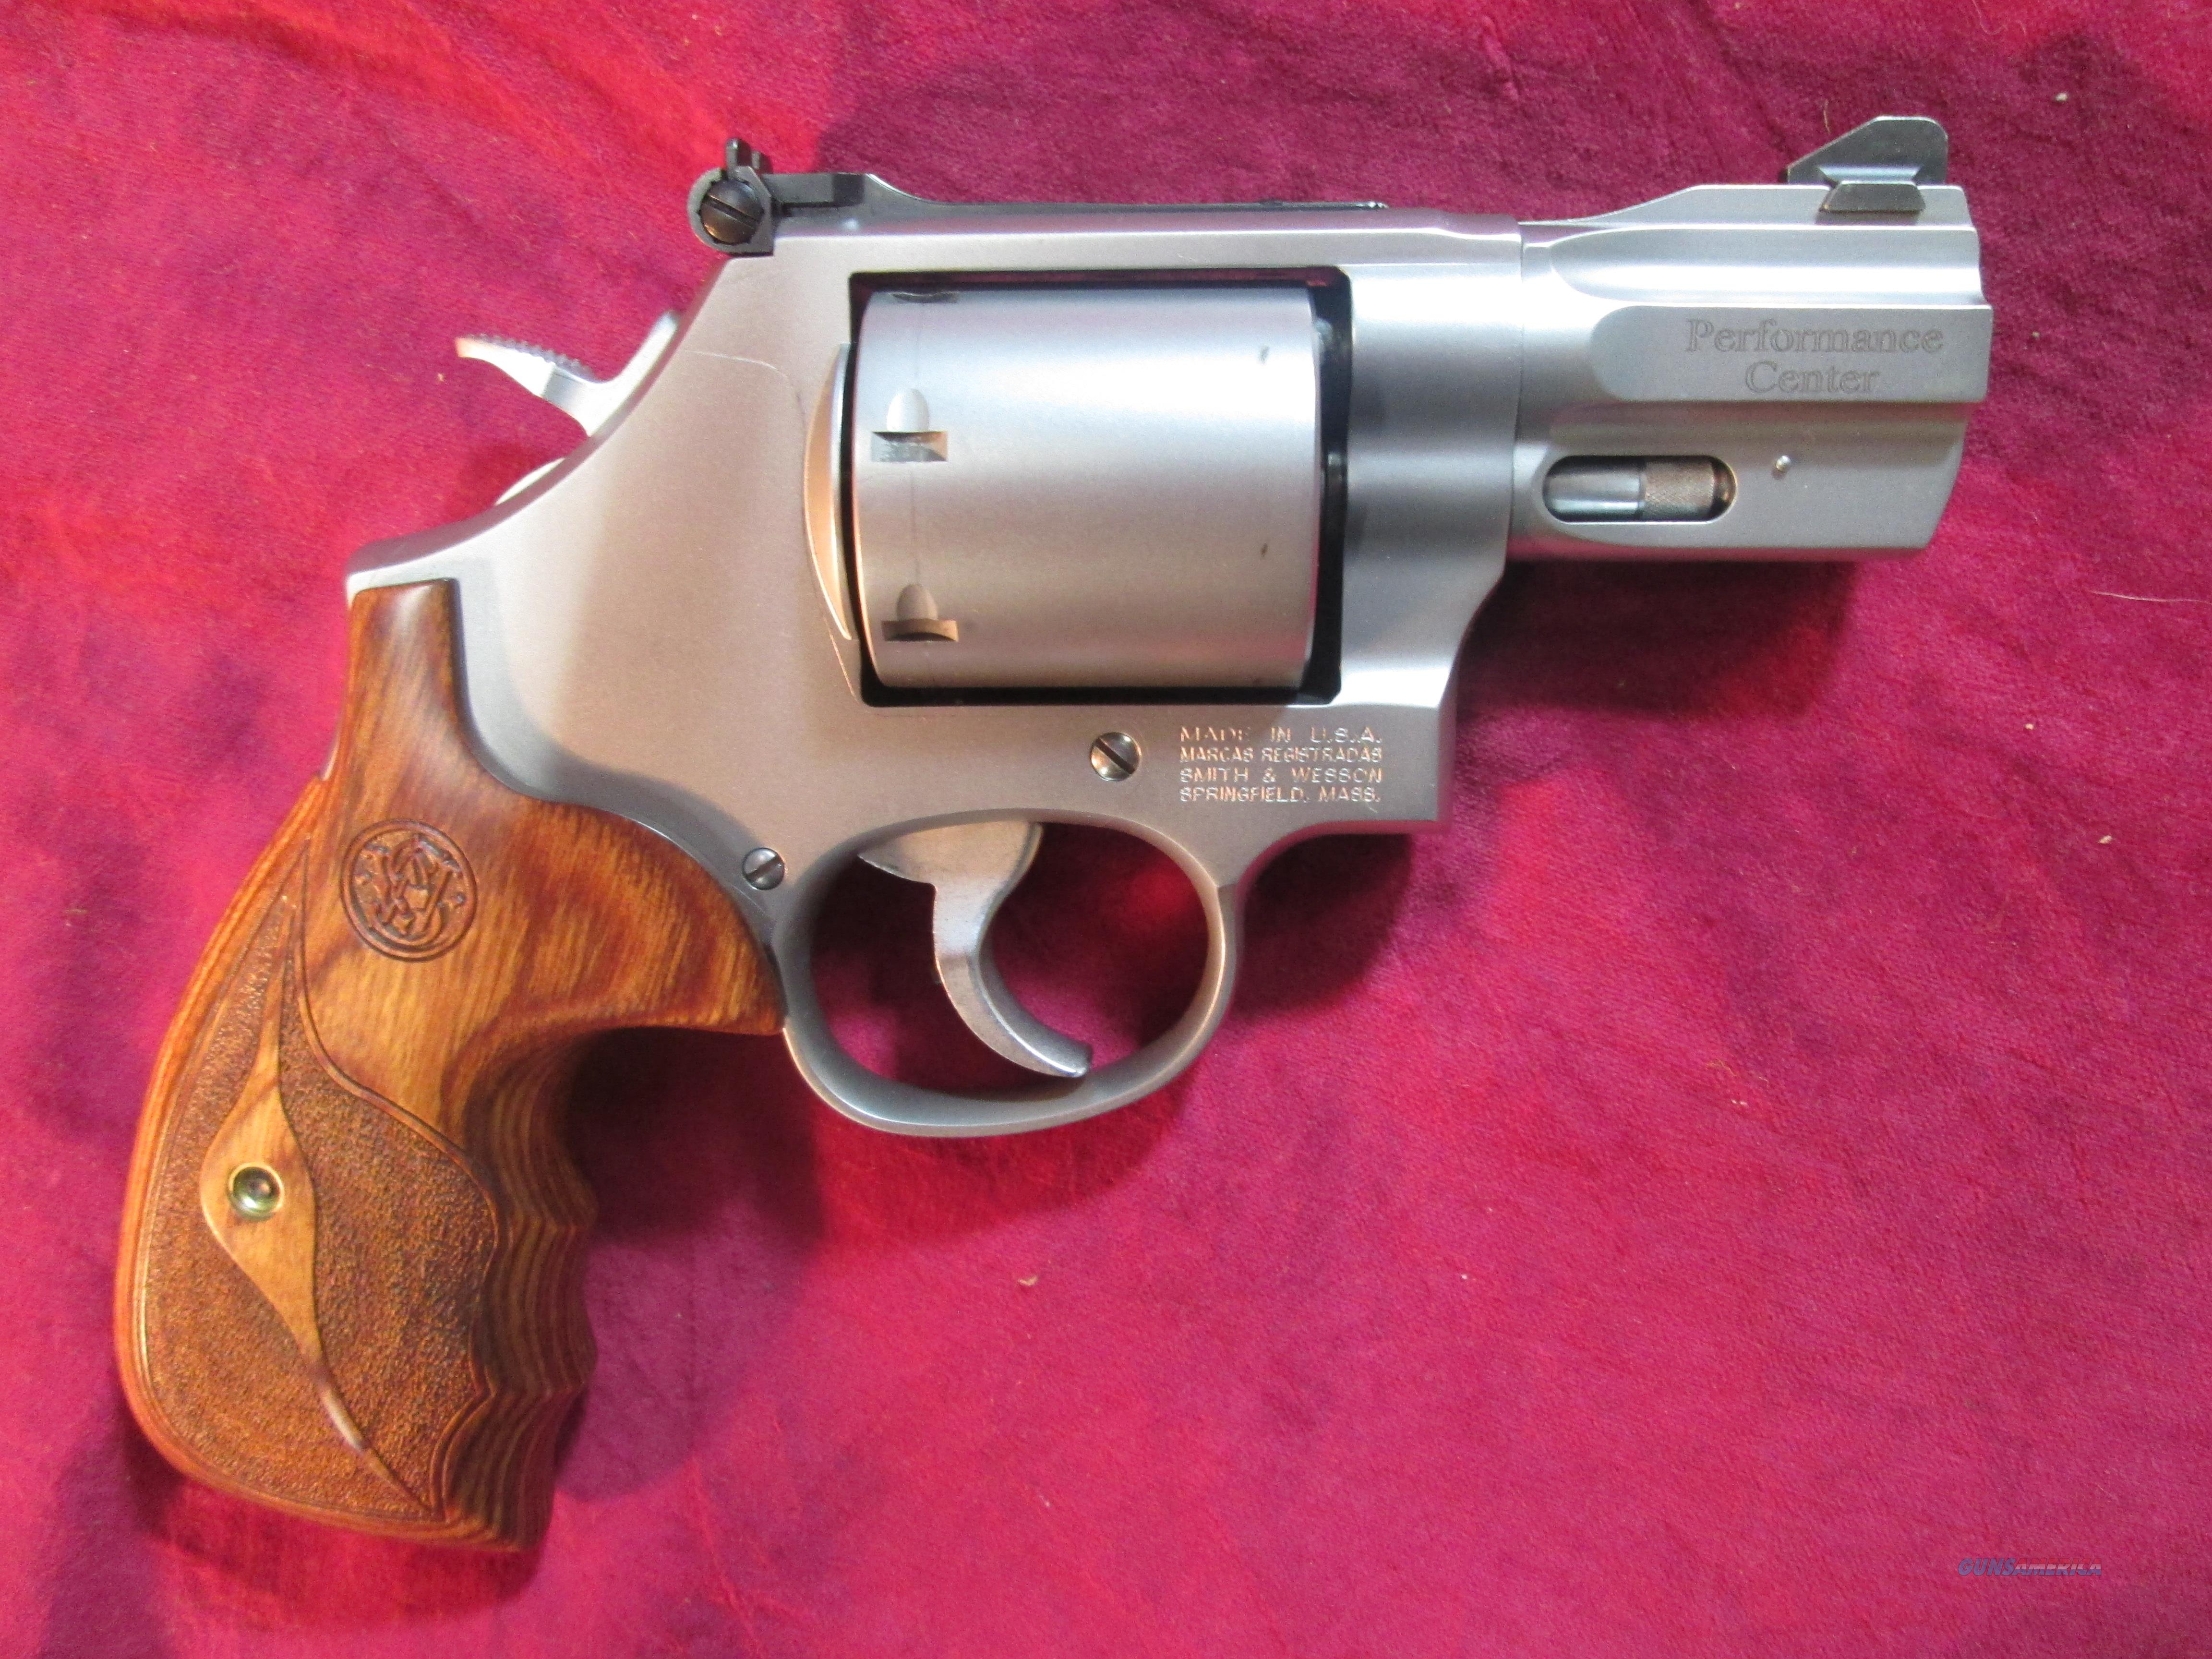 "SMITH AND WESSON PERFORMANCE CENTER 686 357MAG CAL, STAINLESS 2.5"" BARREL USED  Guns > Pistols > Smith & Wesson Revolvers > Full Frame Revolver"